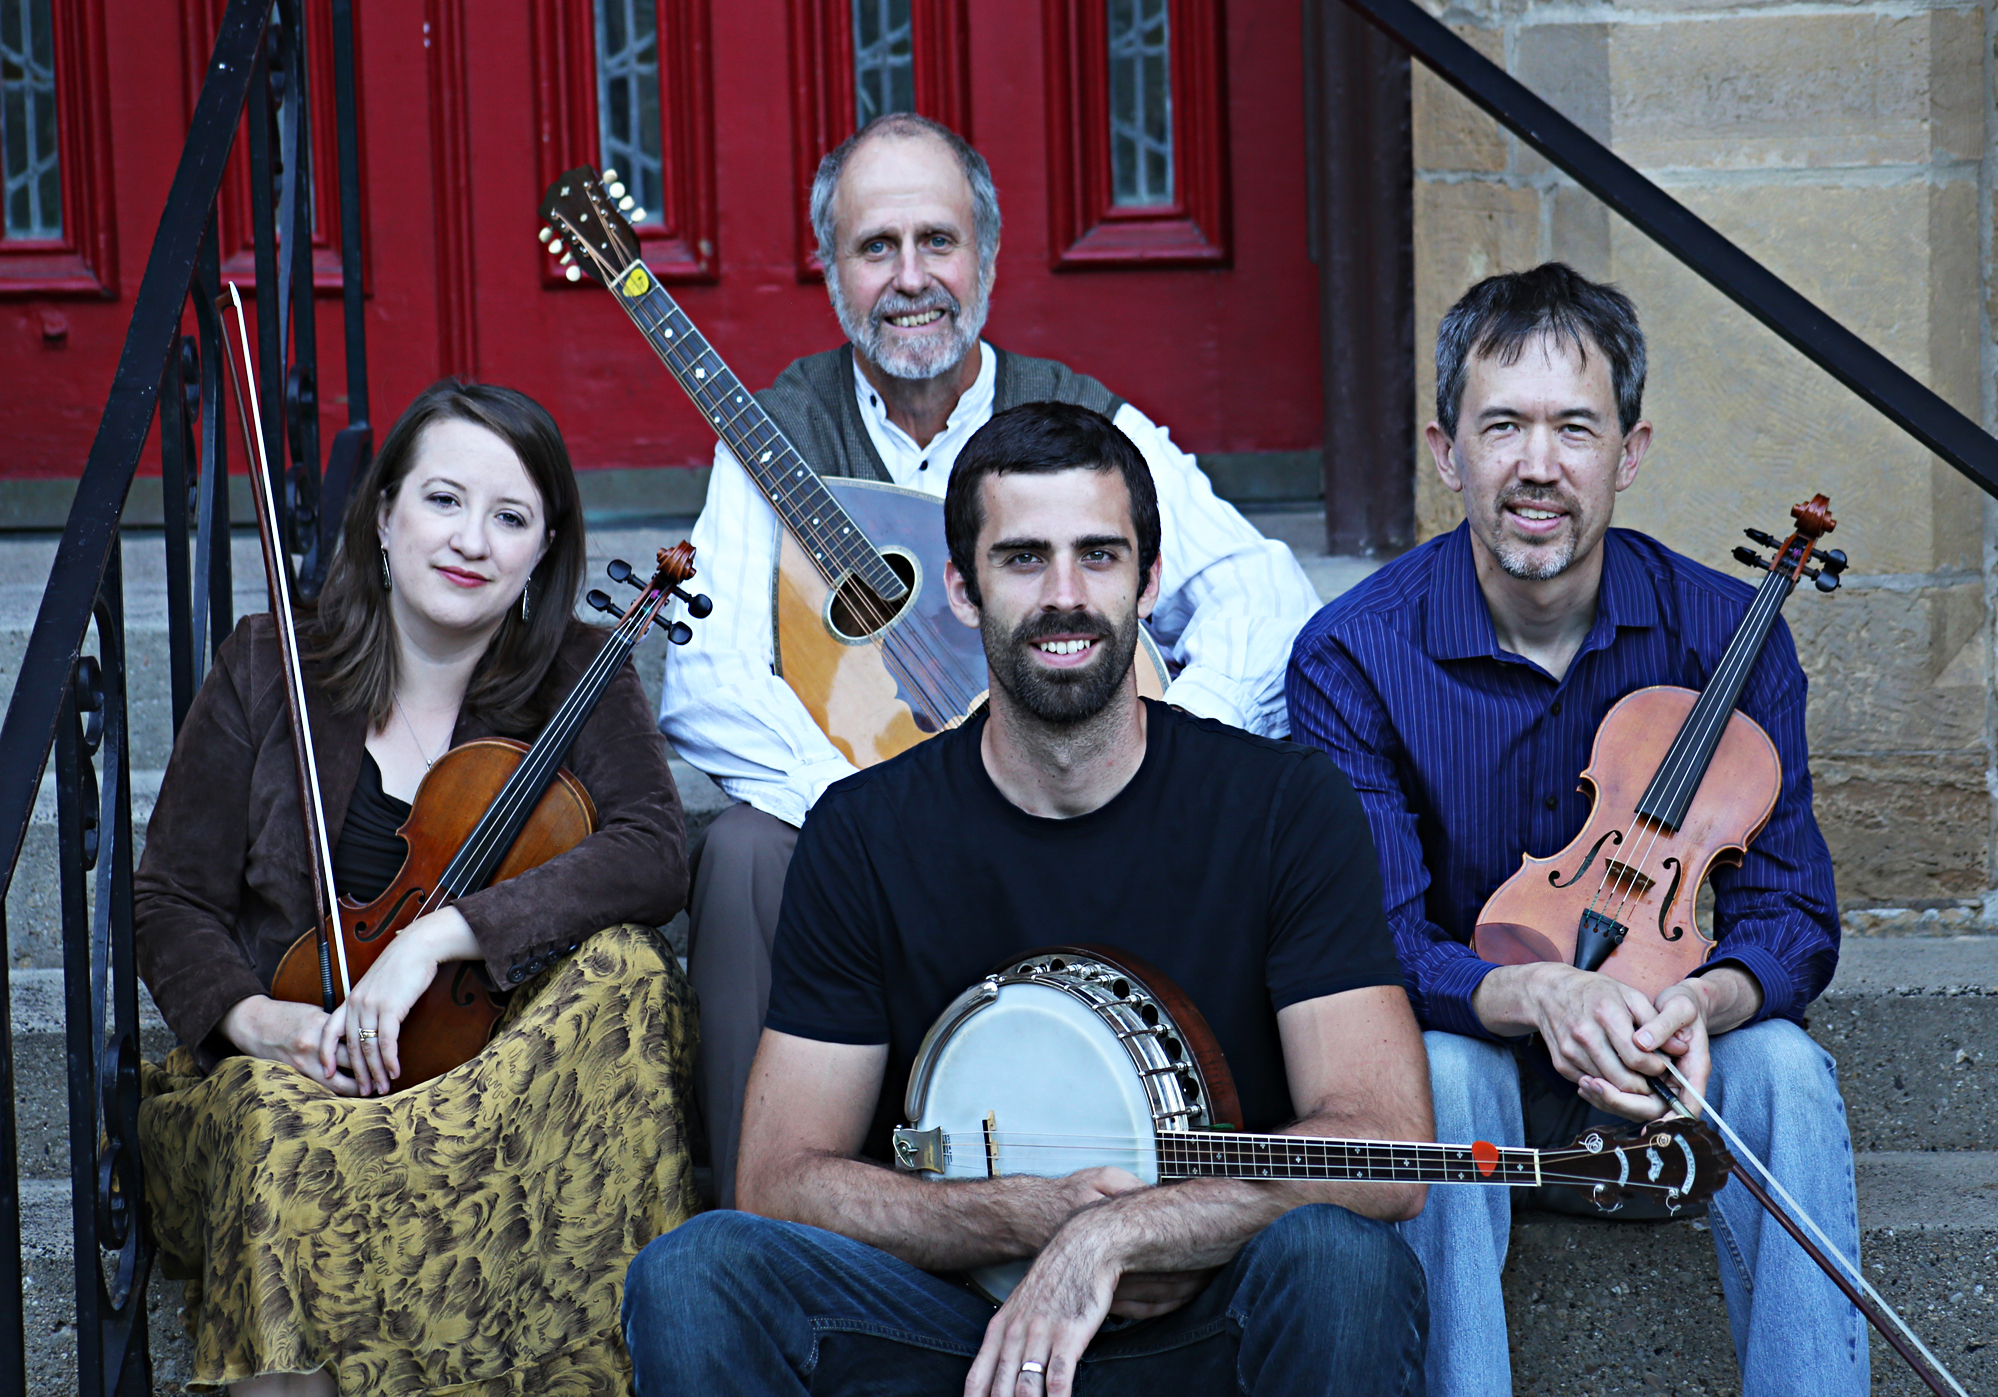 West Wind  Irish traditional music based in Wisconsin